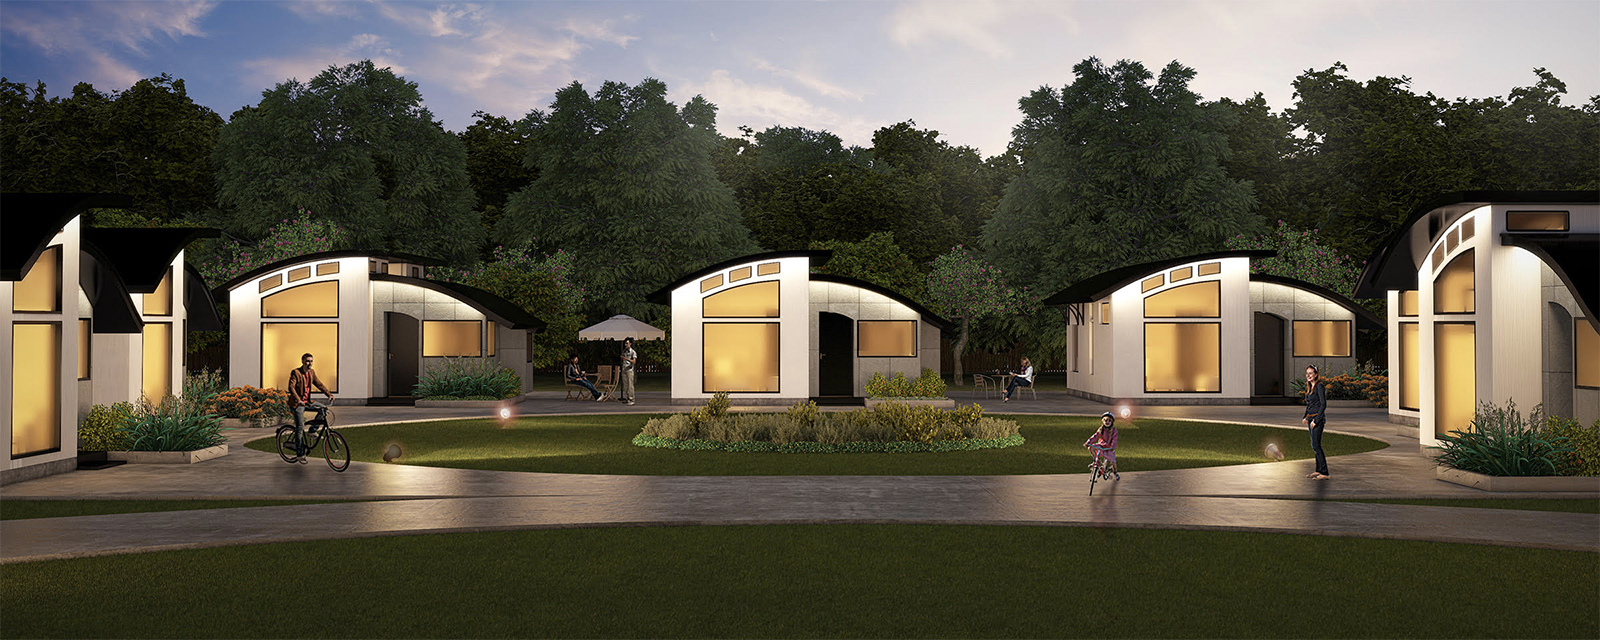 Forget tiny homes, Flex House is designed 'right-sized living'